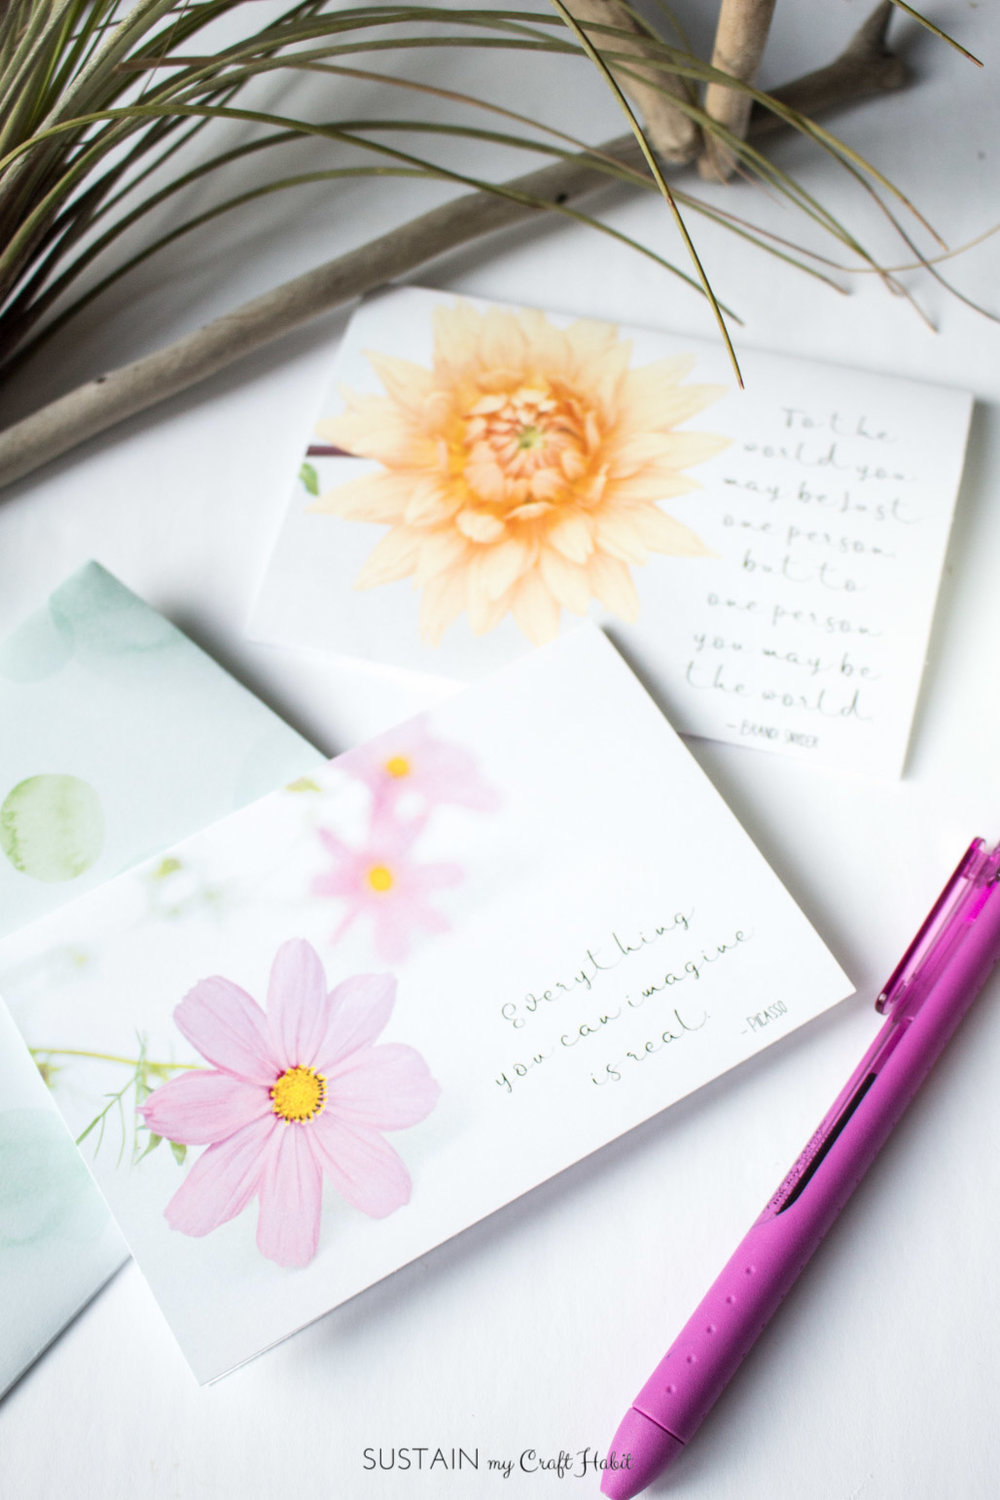 Grab your own free inspiration floral greeting cards template. Great to give for birthdays, showers or other special events or just keep for your own personal notes. Plus get a new floral card each month!